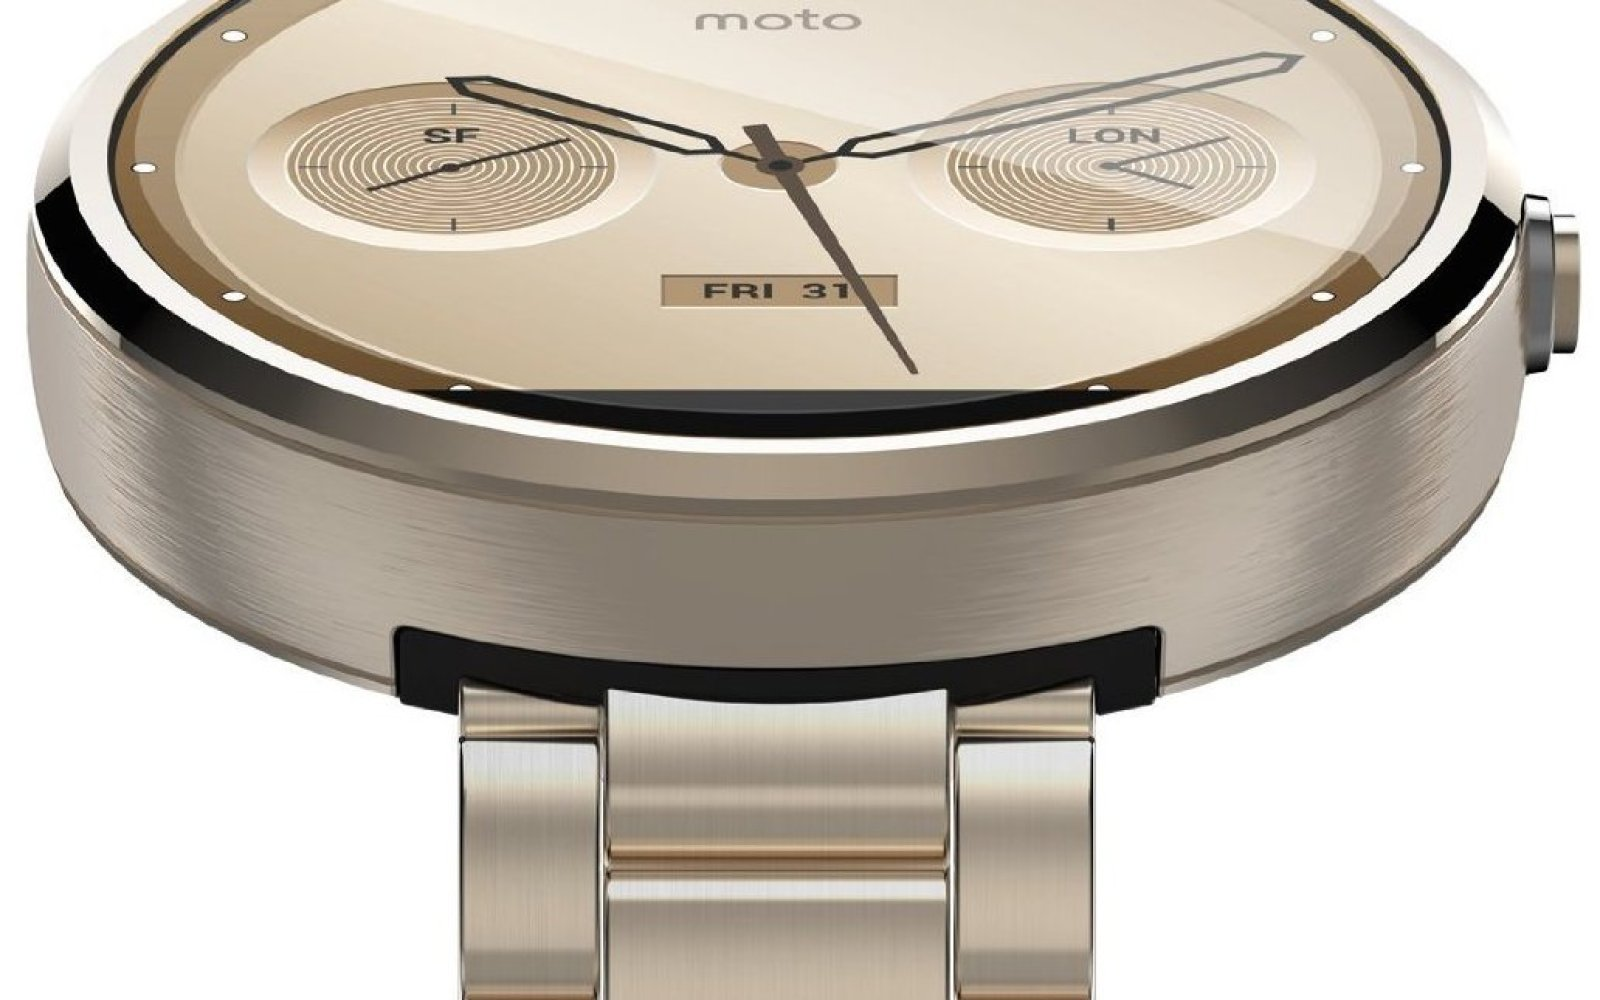 Moto 360, the best Android Wear Smartwatch, is on sale for $278 shipped in champagne gold (Reg. $330)